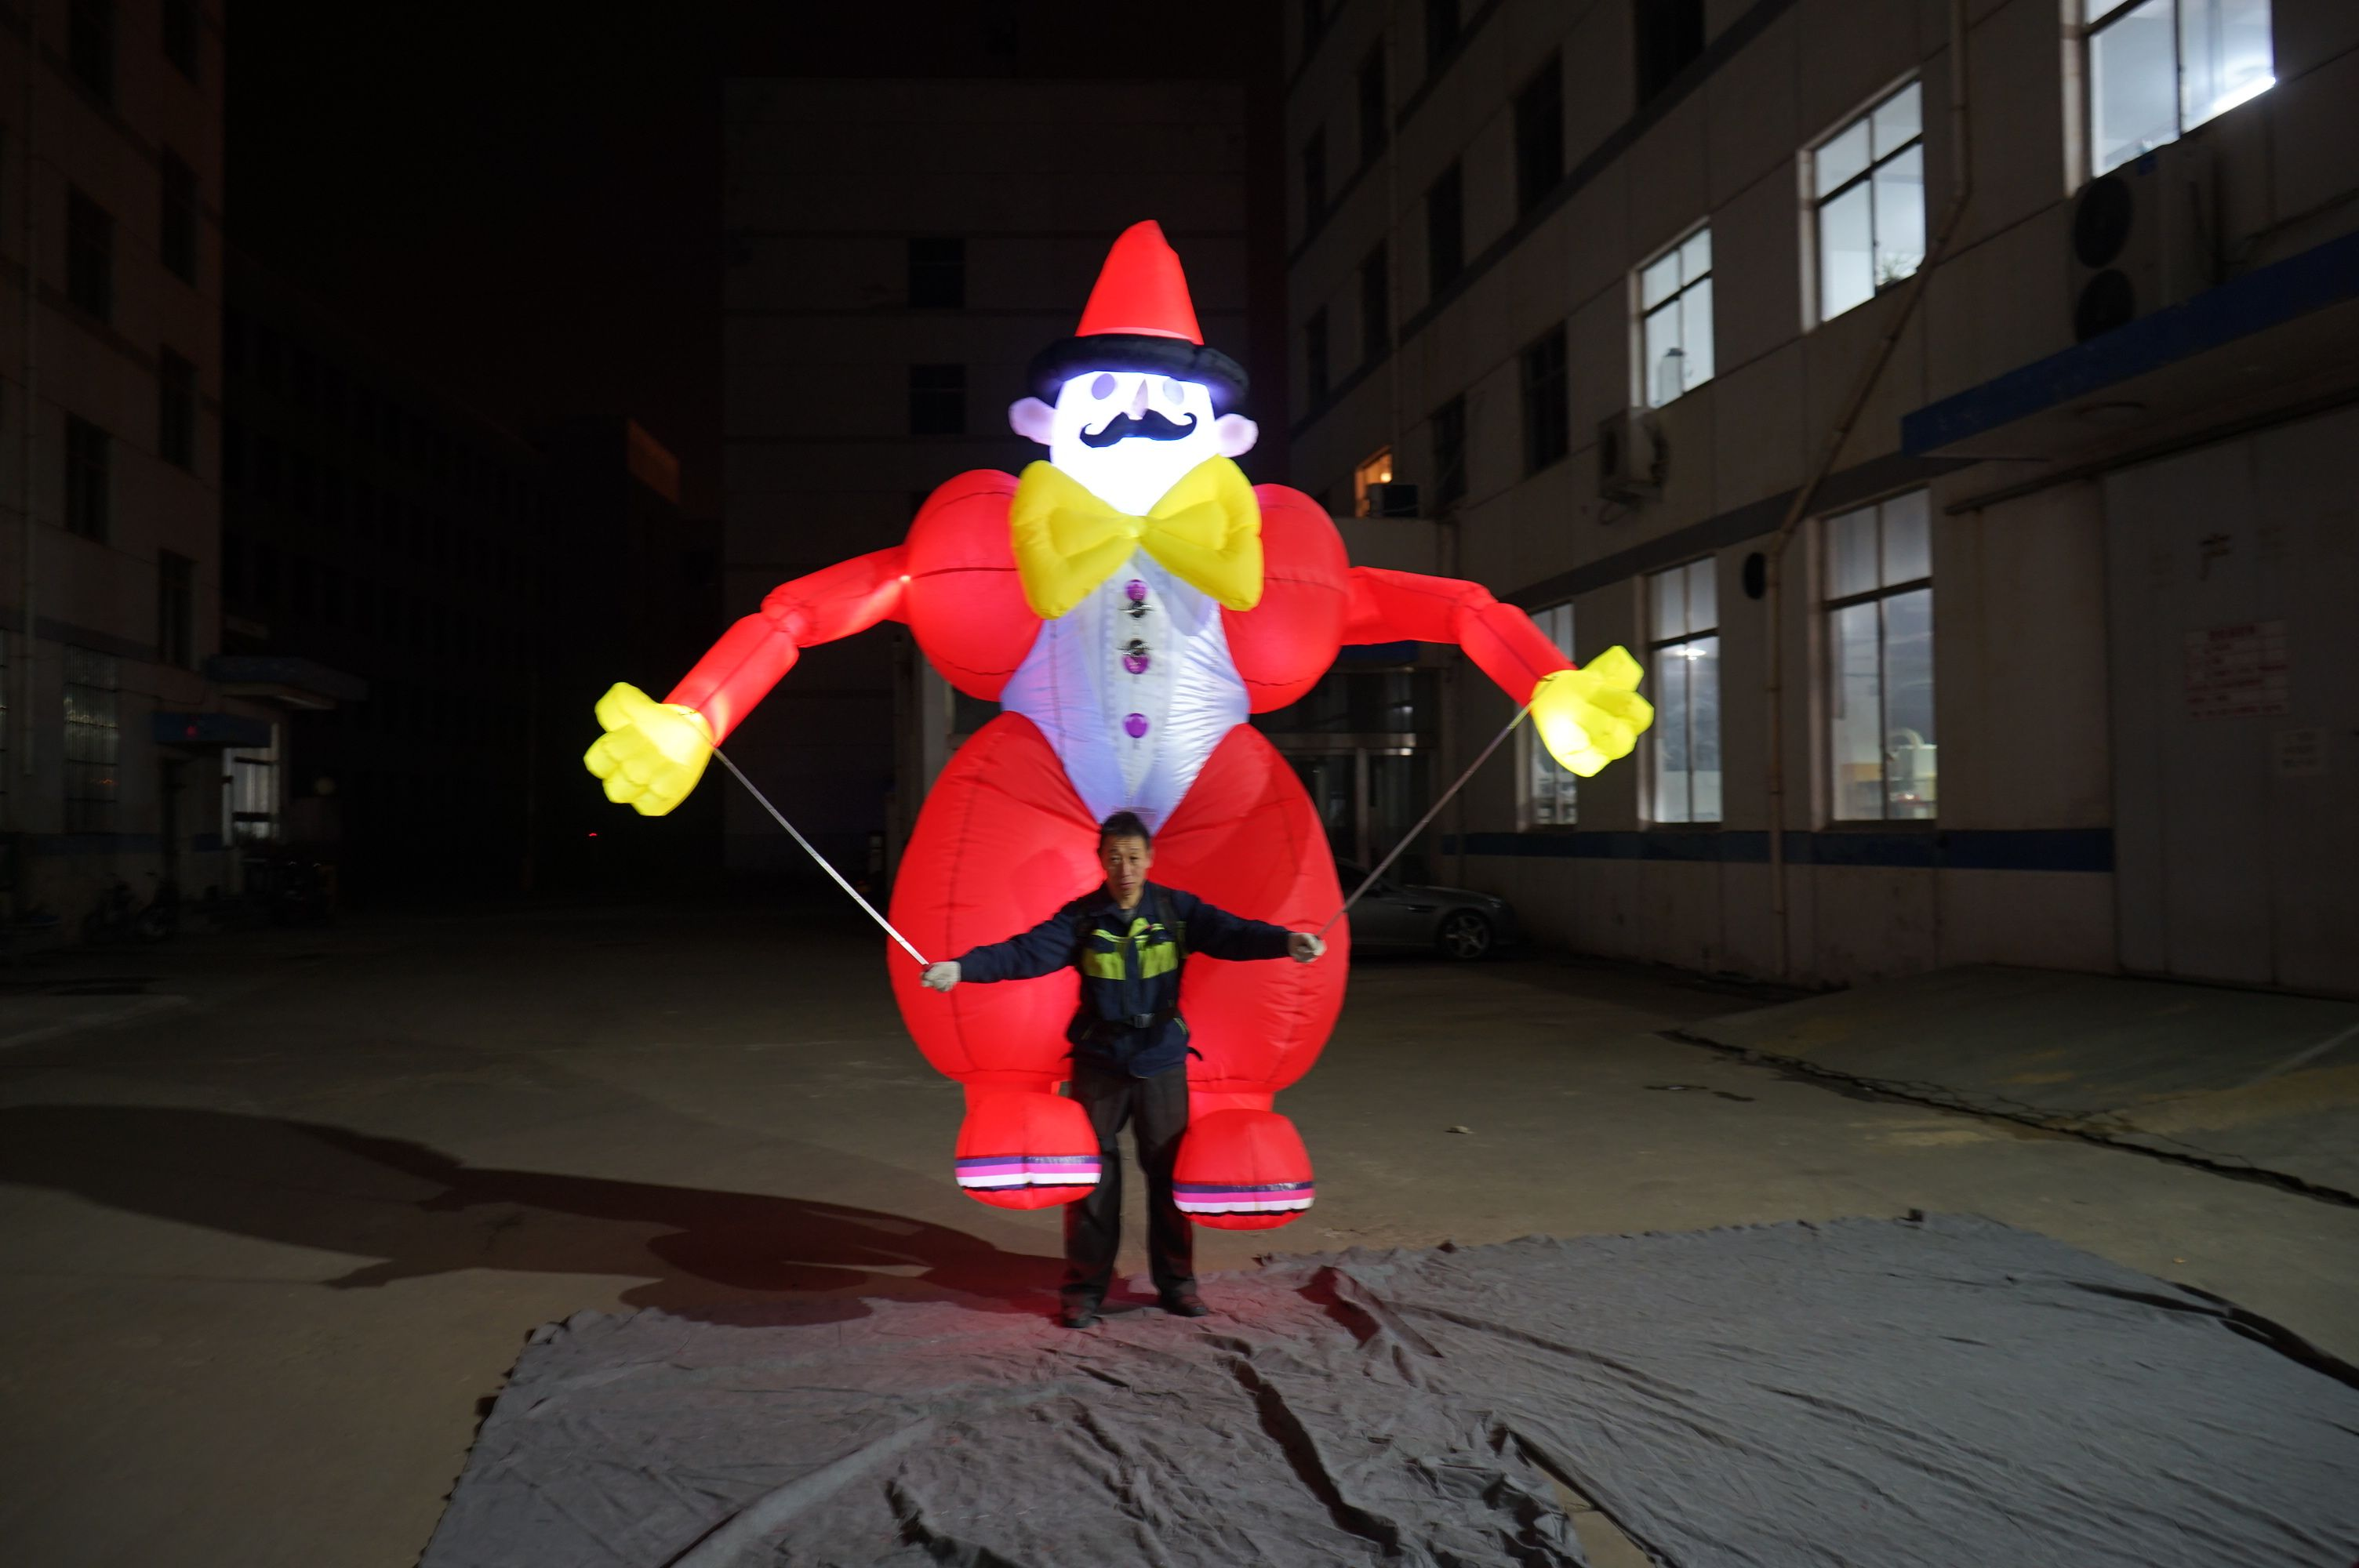 Inflatable Puppet artistic direction how to decorate